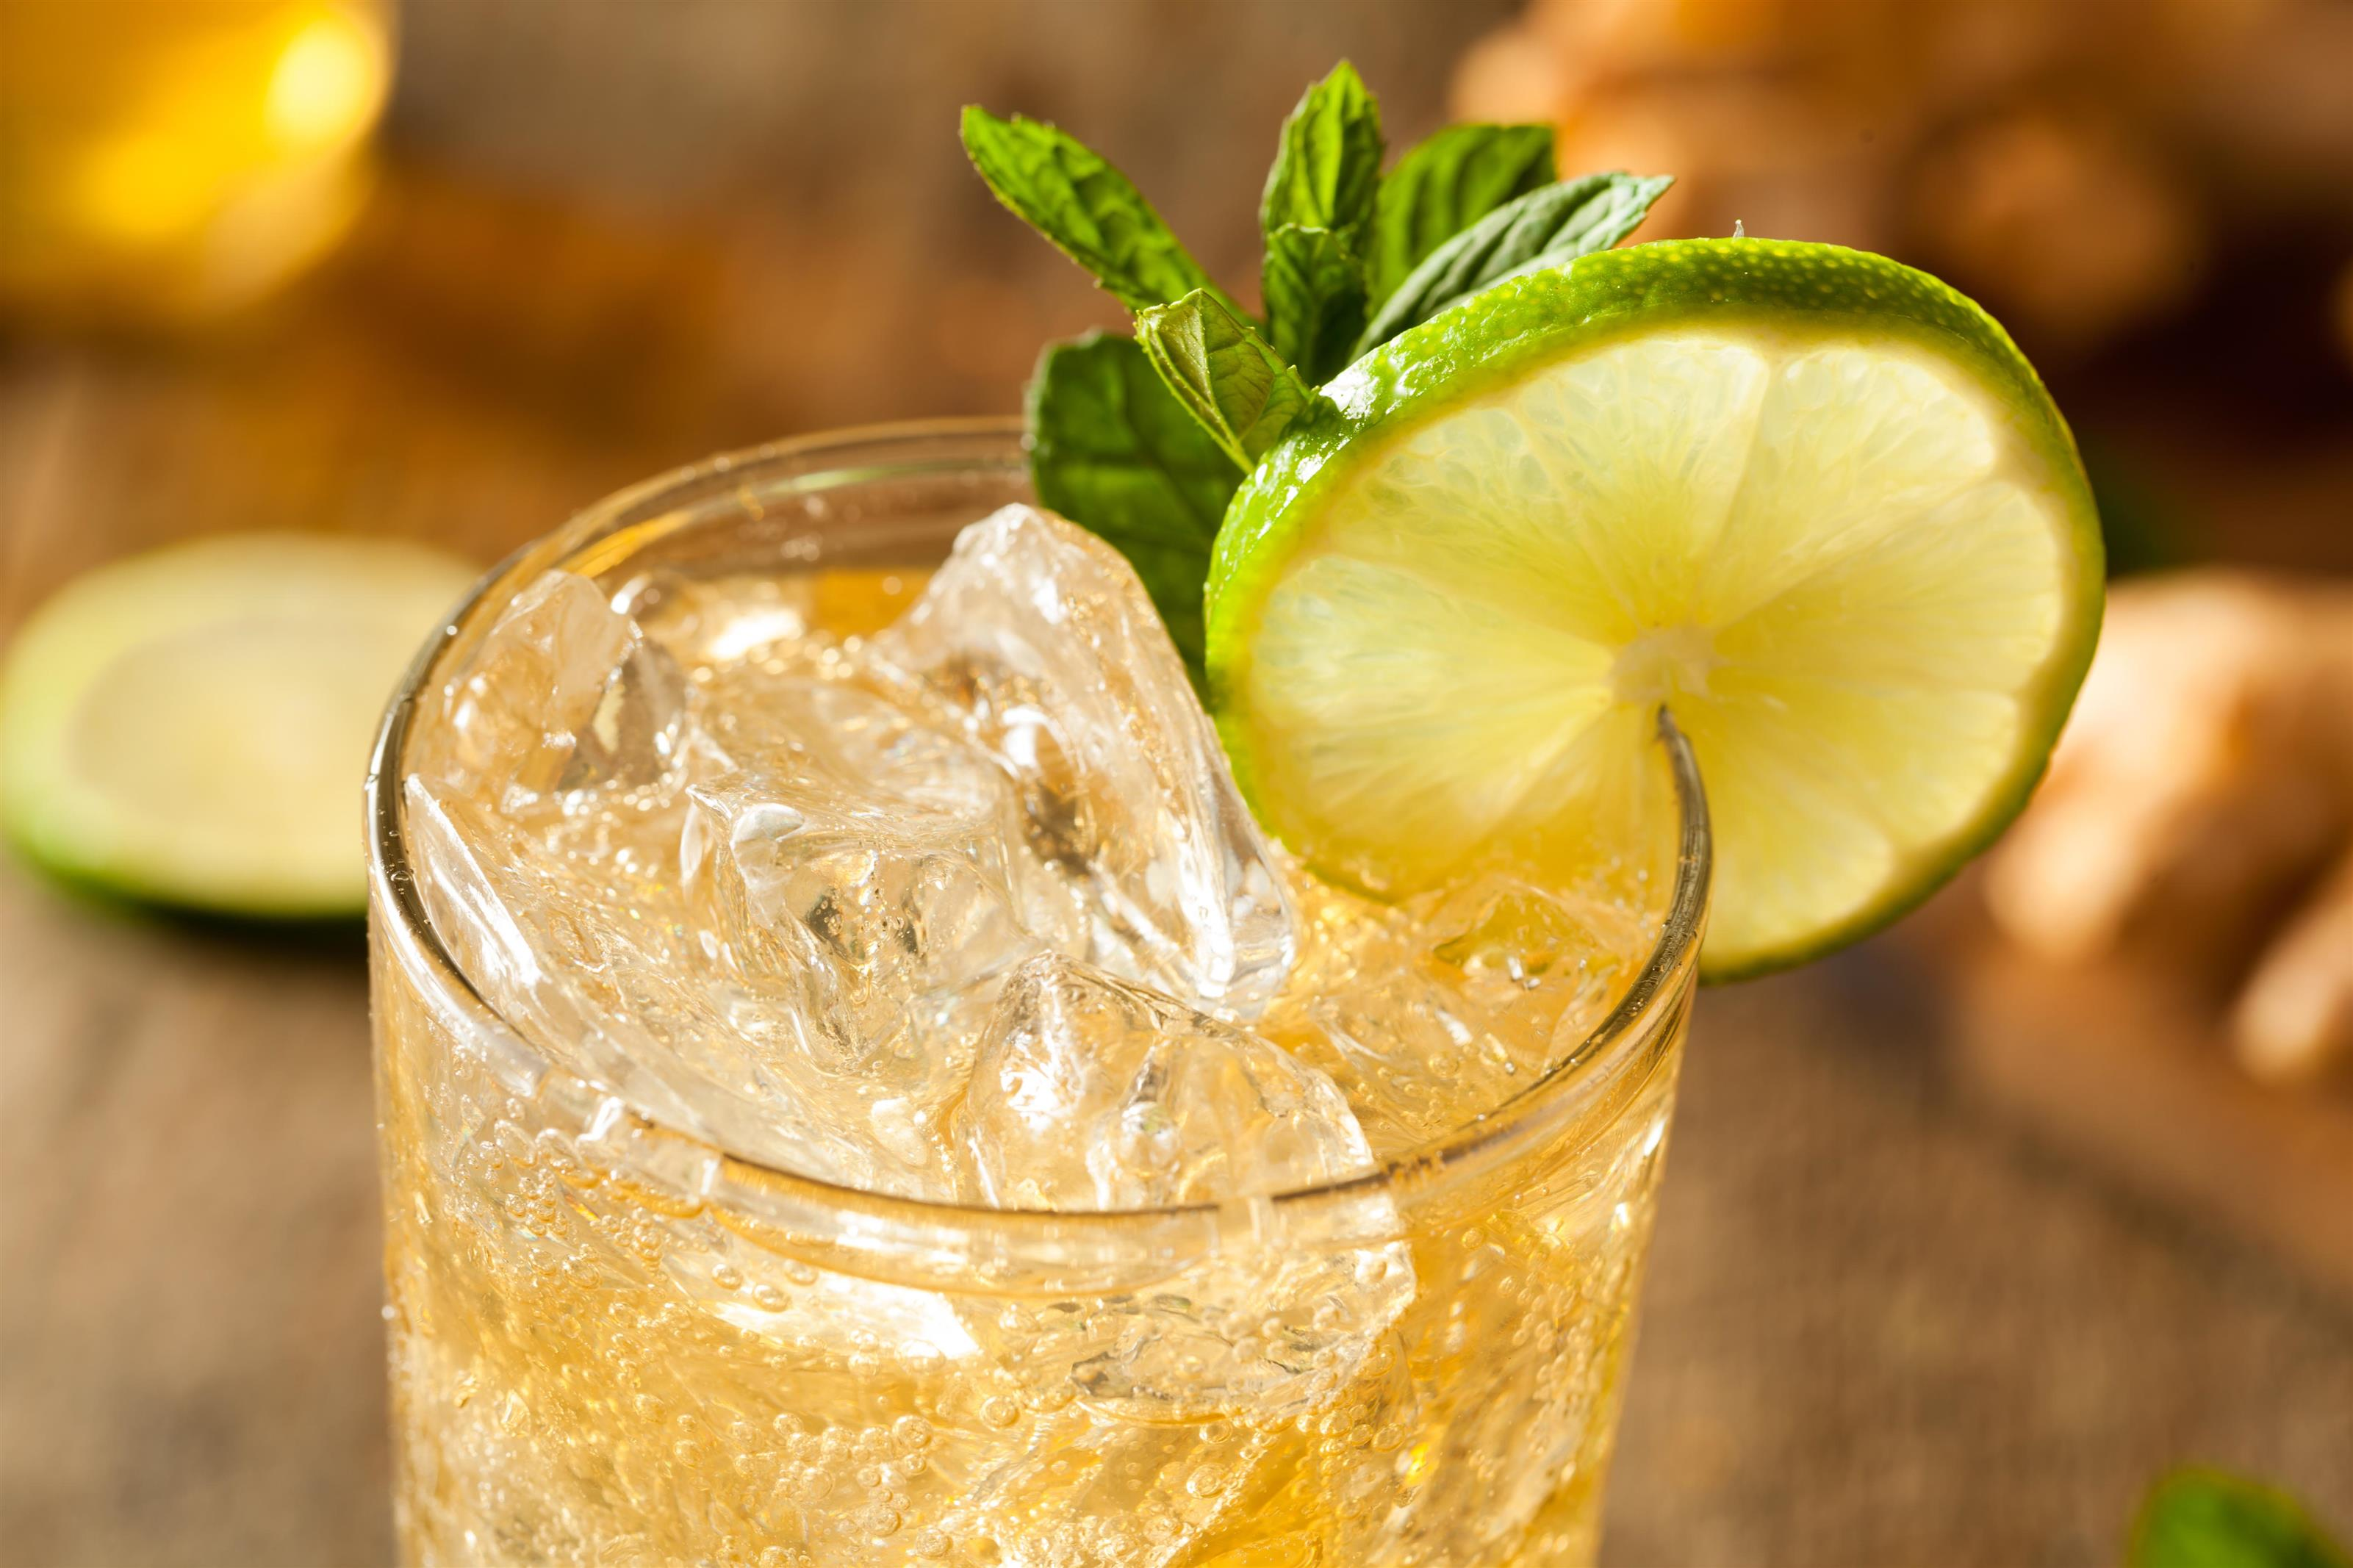 golden ginger beer with mint in a glass with a lime wedge